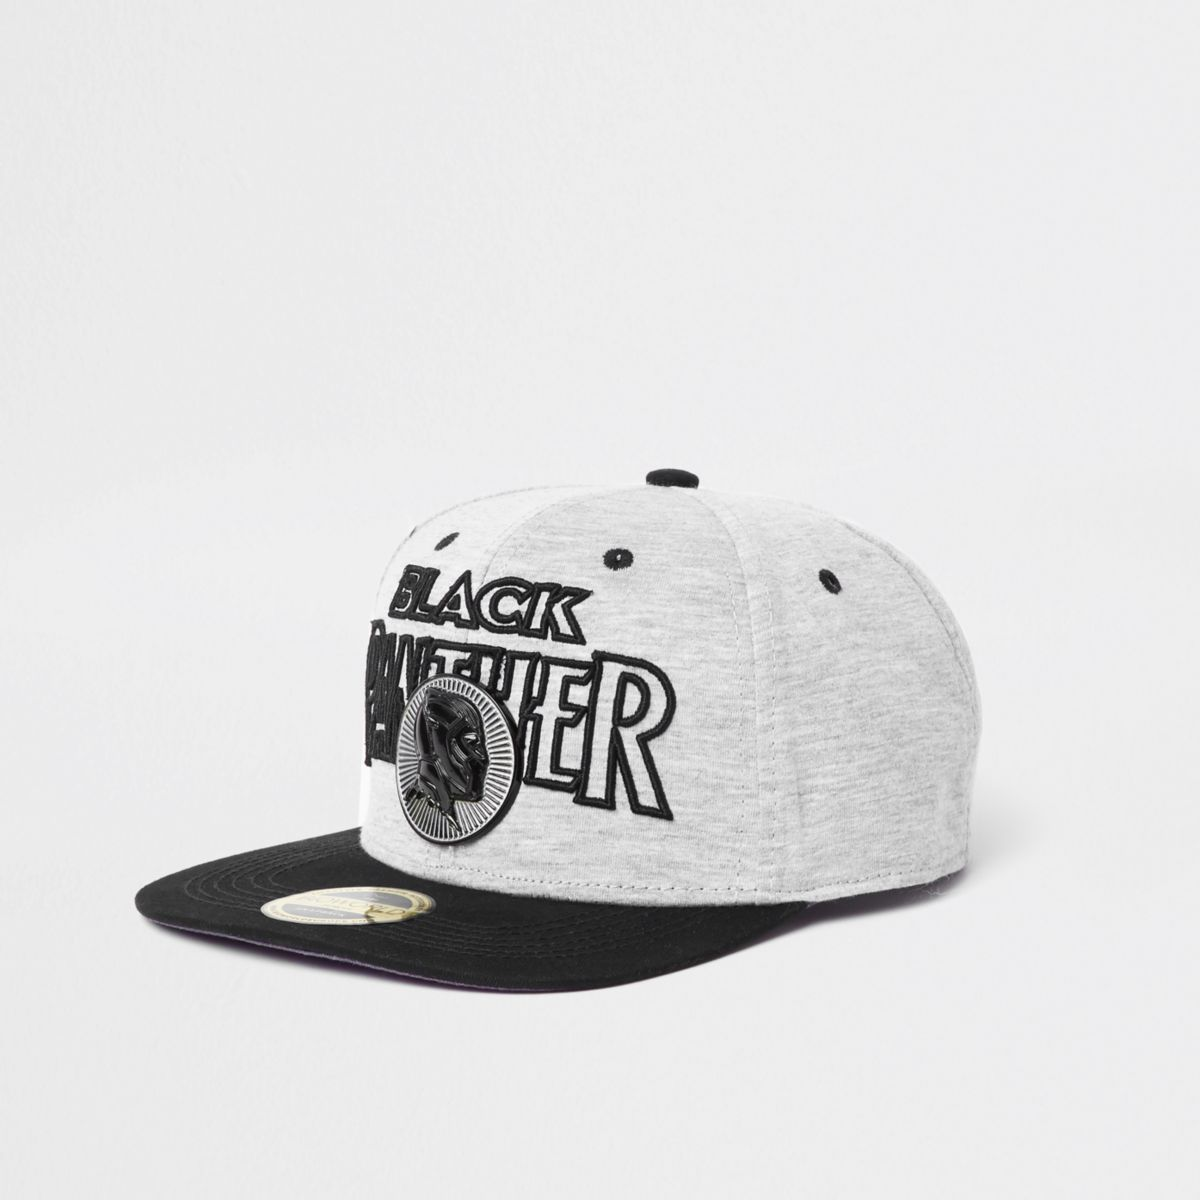 Grey 'Black Panther' snapback cap